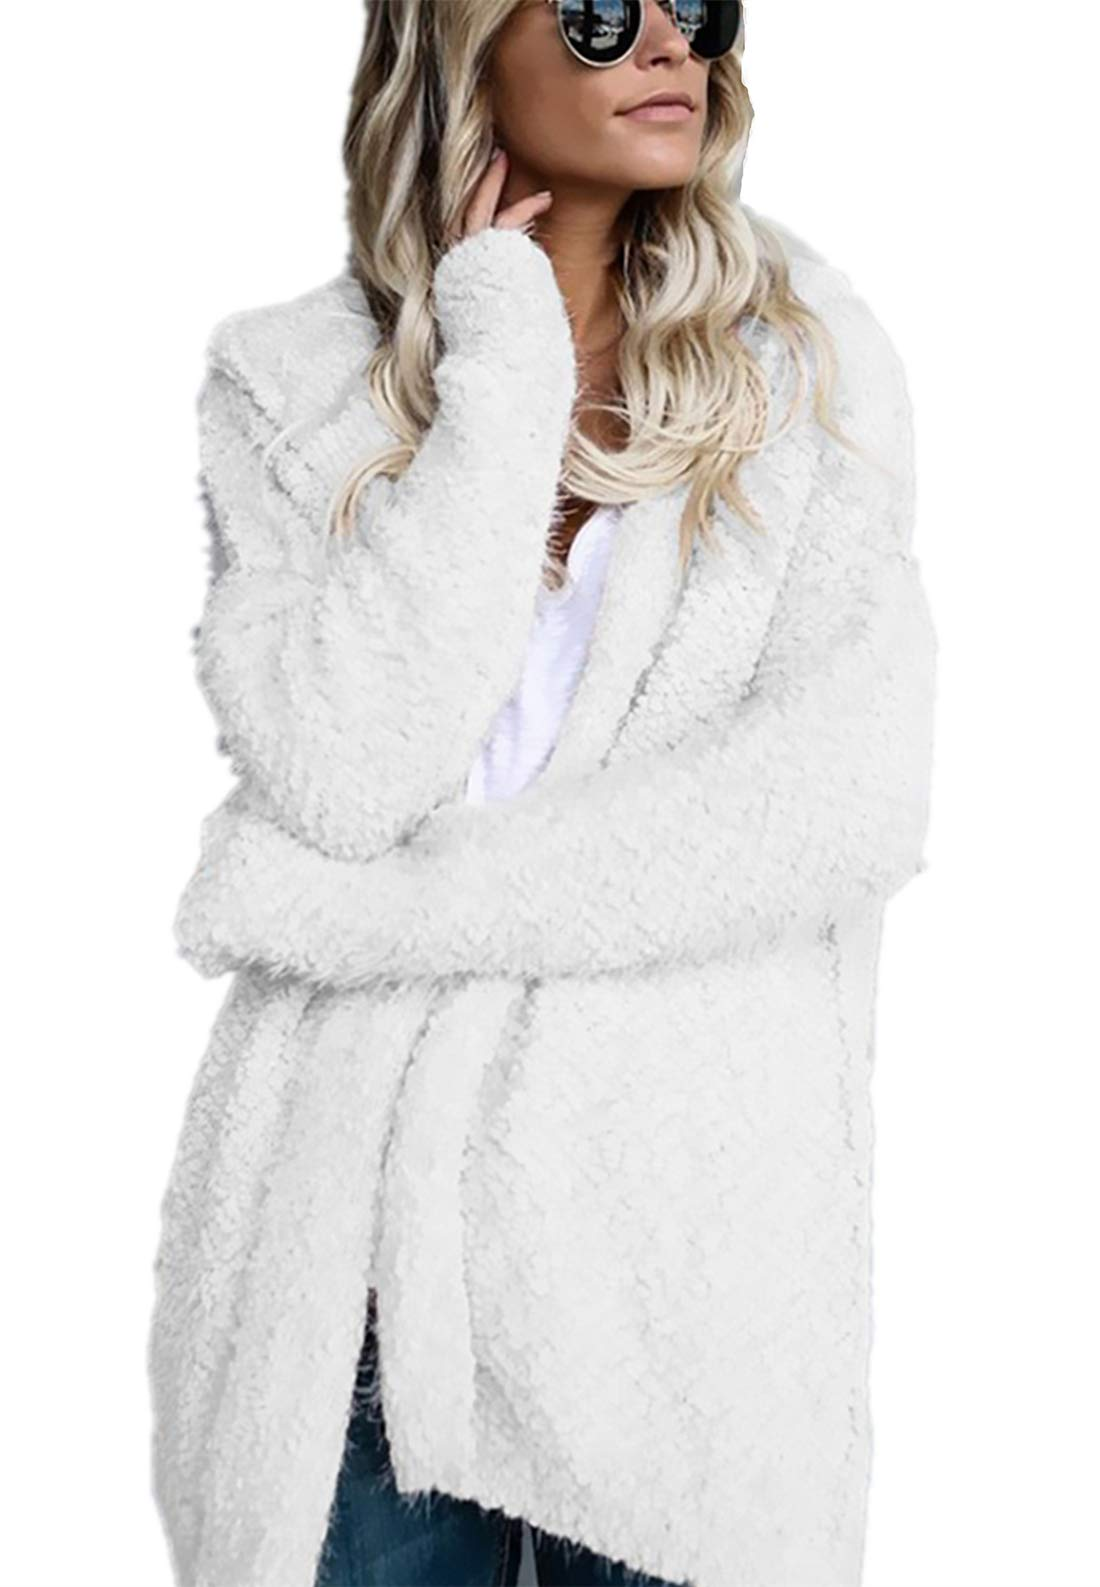 Happy Sailed Women Fuzzy Fleece Jackets Loose Open Front Hooded Cardigan Winter Coats Daily Outwear X-Large White